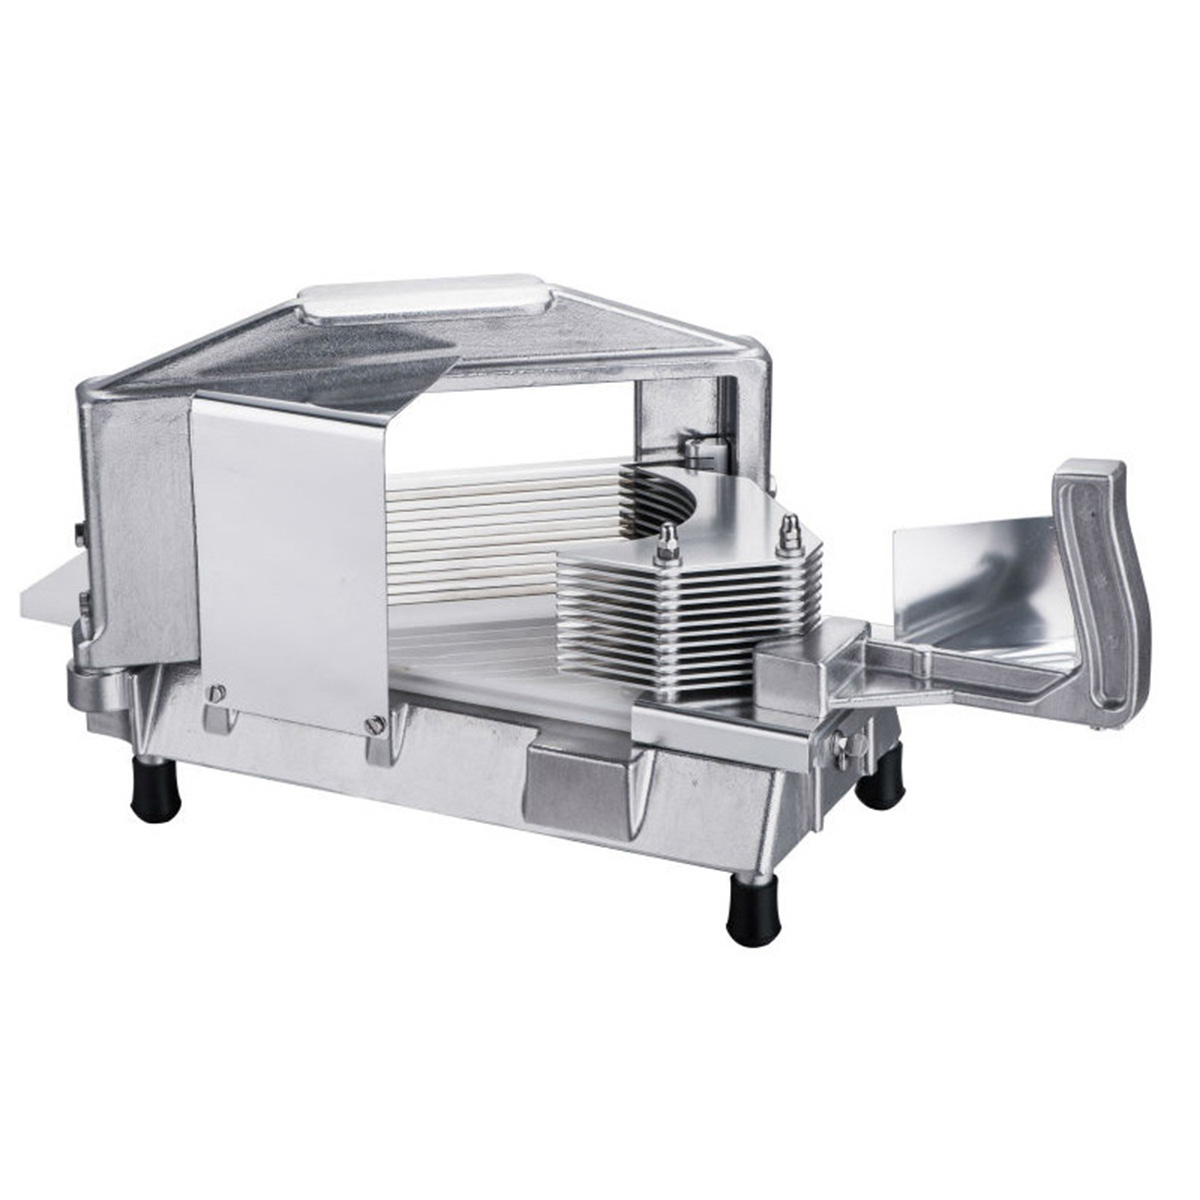 Commercial Tomato Slicer Onion Slicing Cutter Manual Vegetable Cutting Machine